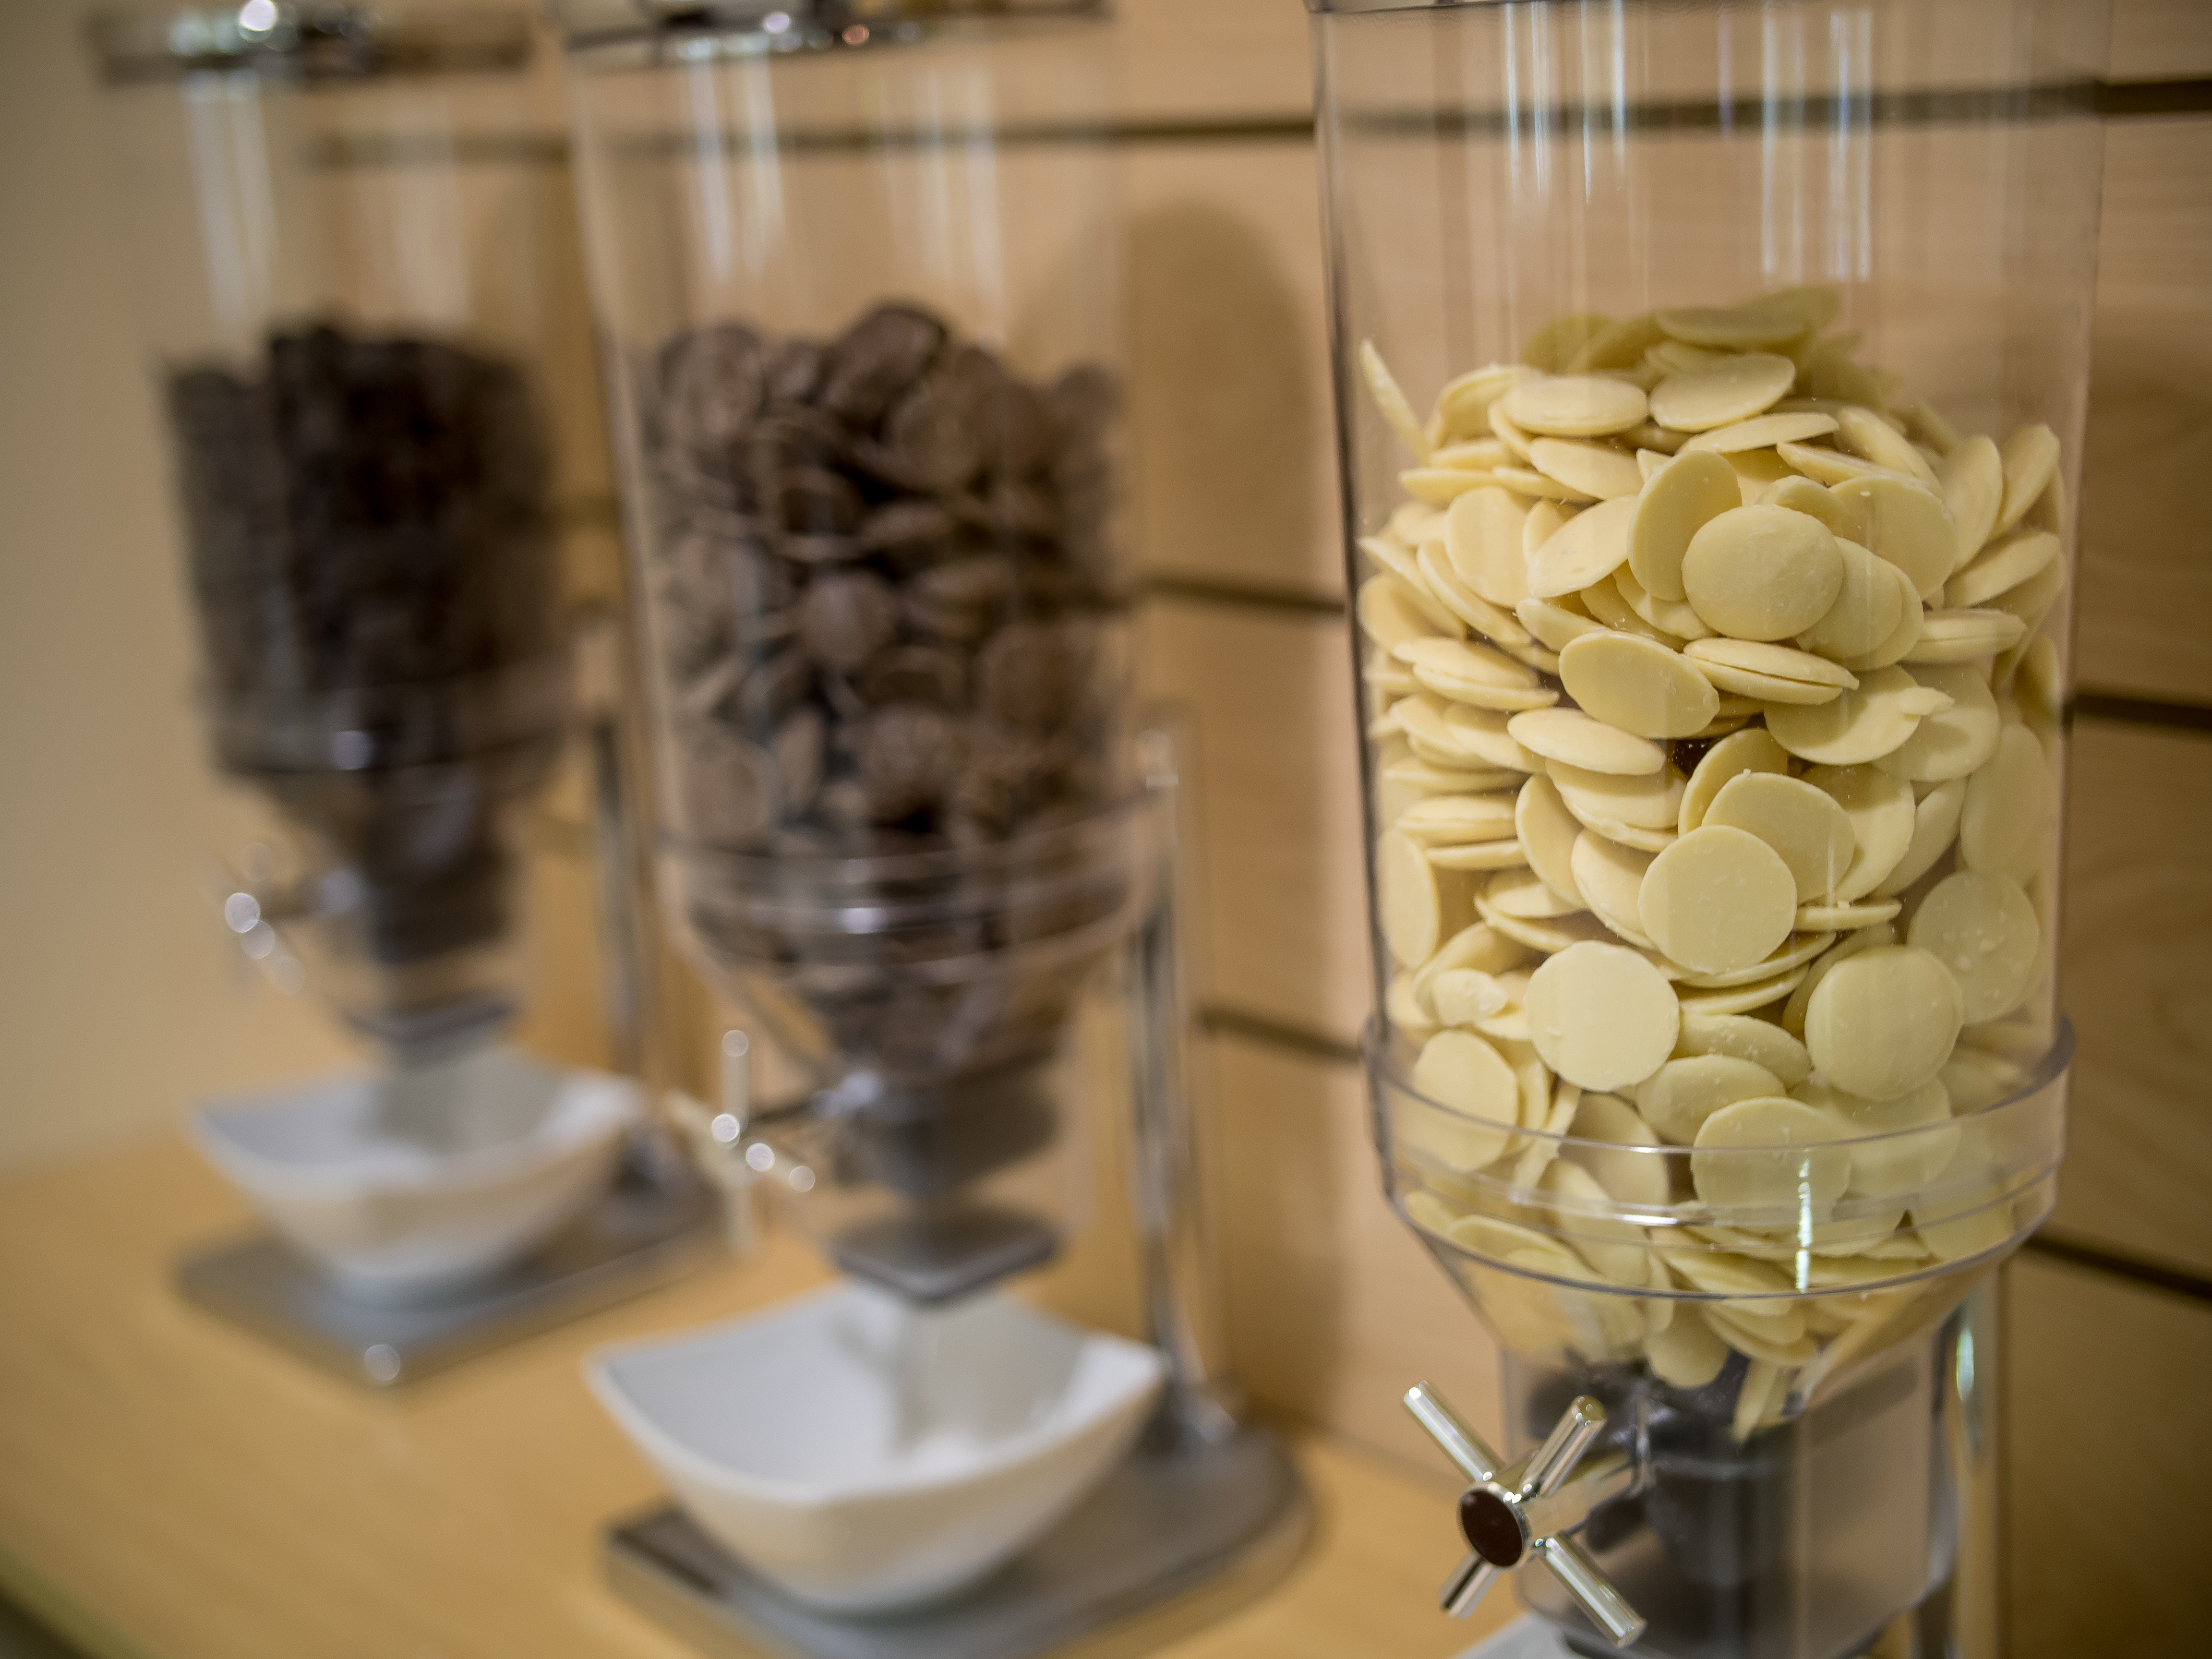 Chocolate tastings are included in the museum visit.